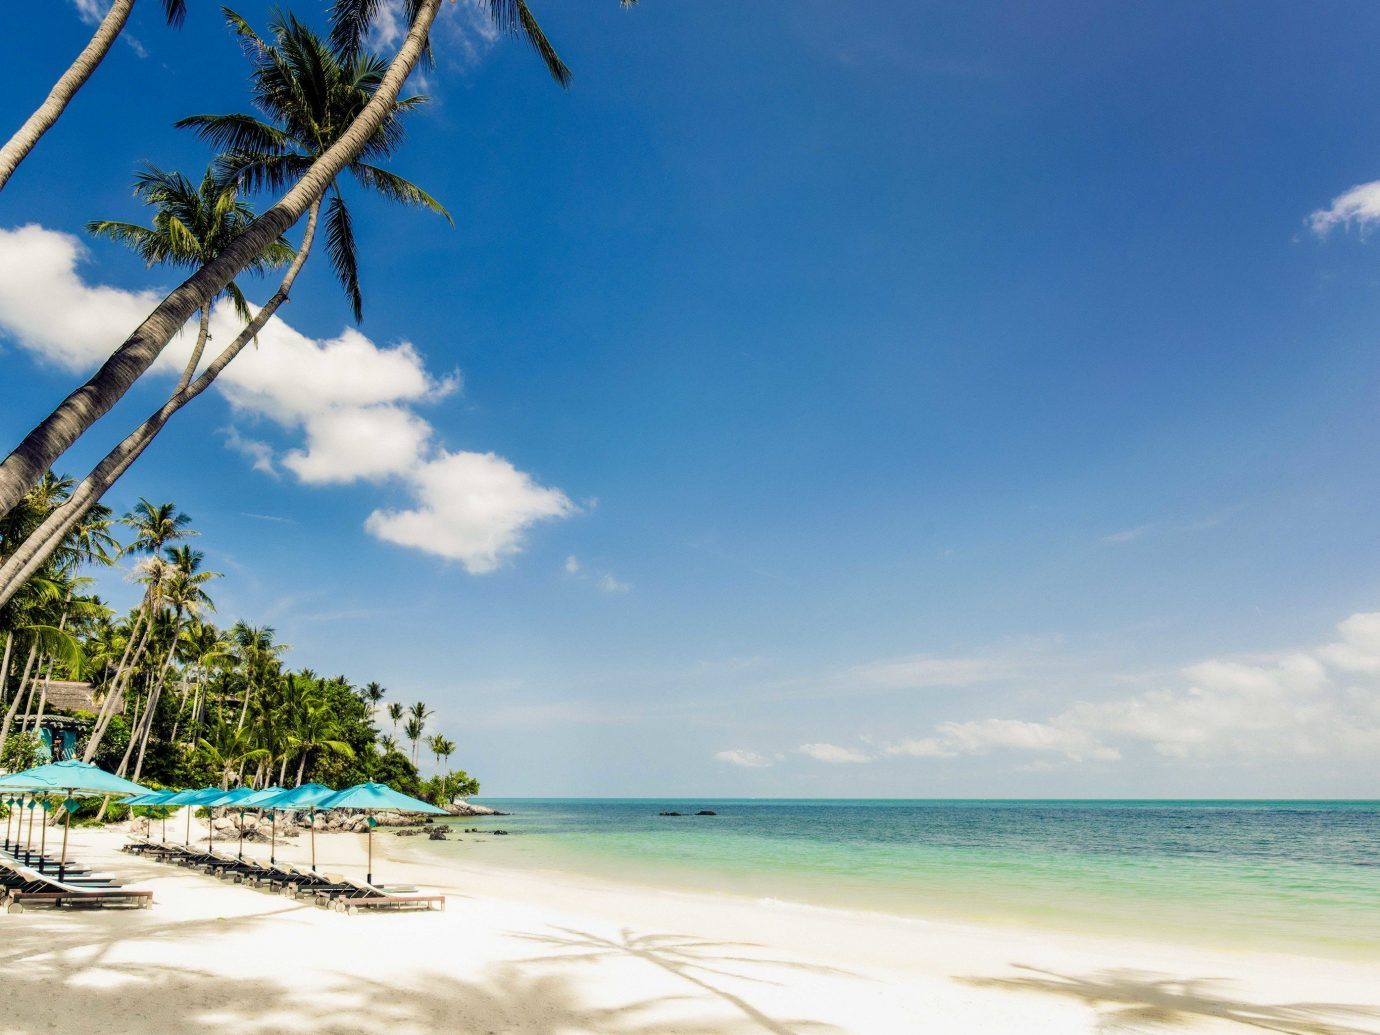 Hotels sky water outdoor Sea tropics body of water caribbean coastal and oceanic landforms Beach shore Ocean cloud vacation palm tree arecales Coast tourism Lagoon horizon Nature daytime bay Island tree leisure Resort calm cay palm plant sandy distance